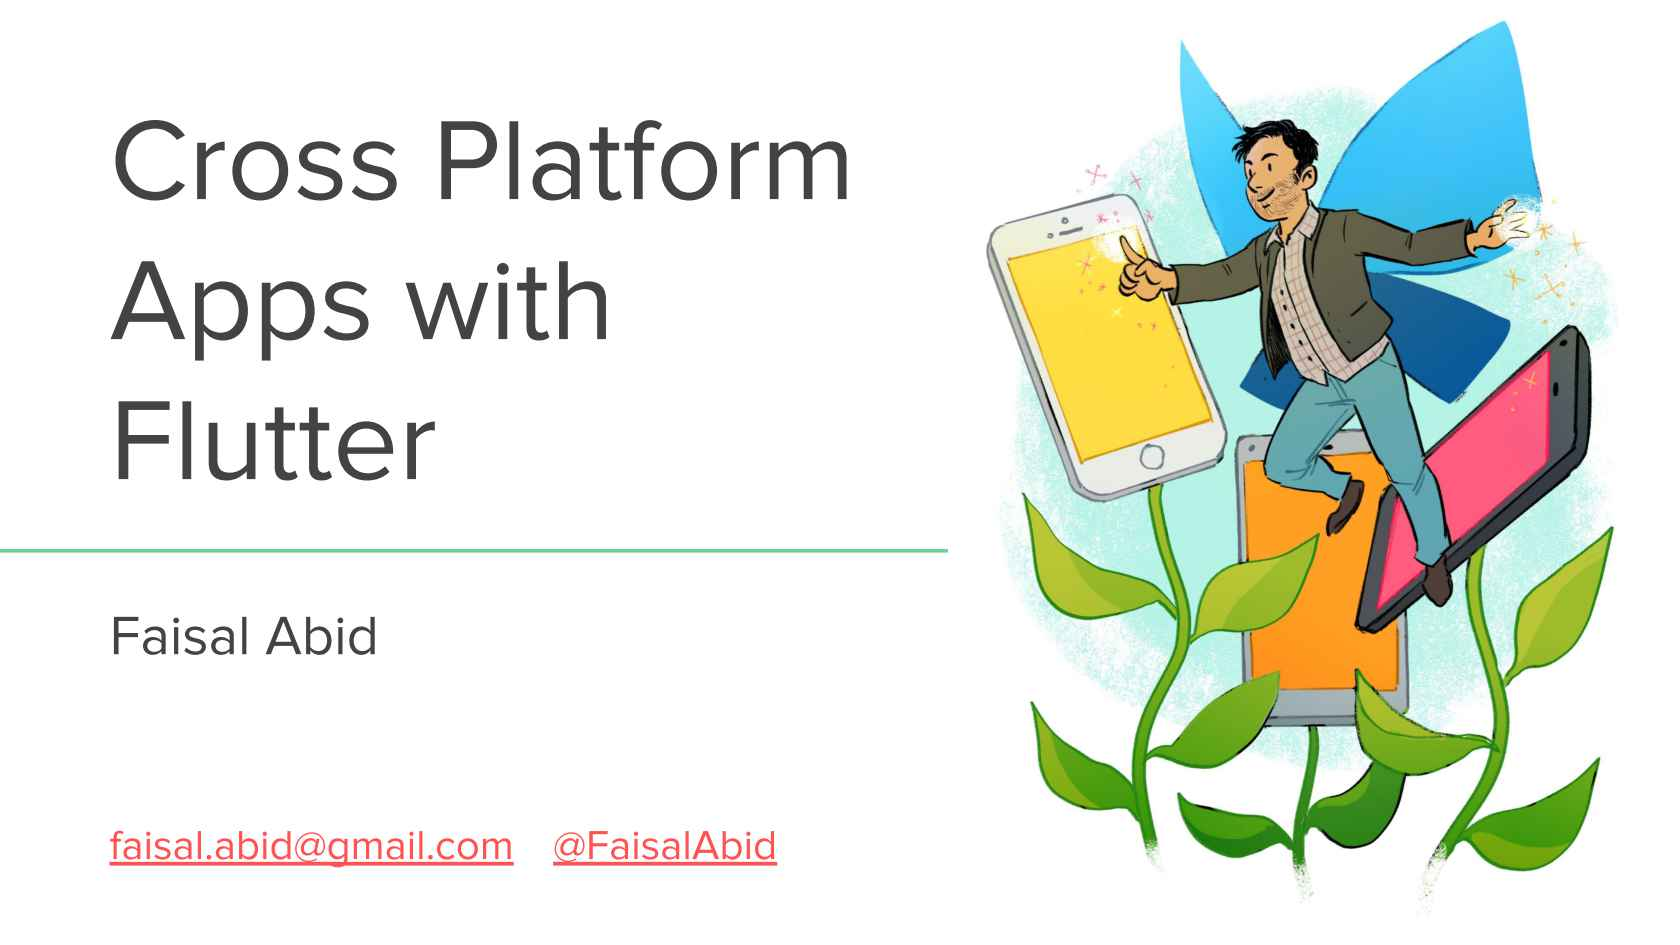 Build Cross Platform Apps with Flutter